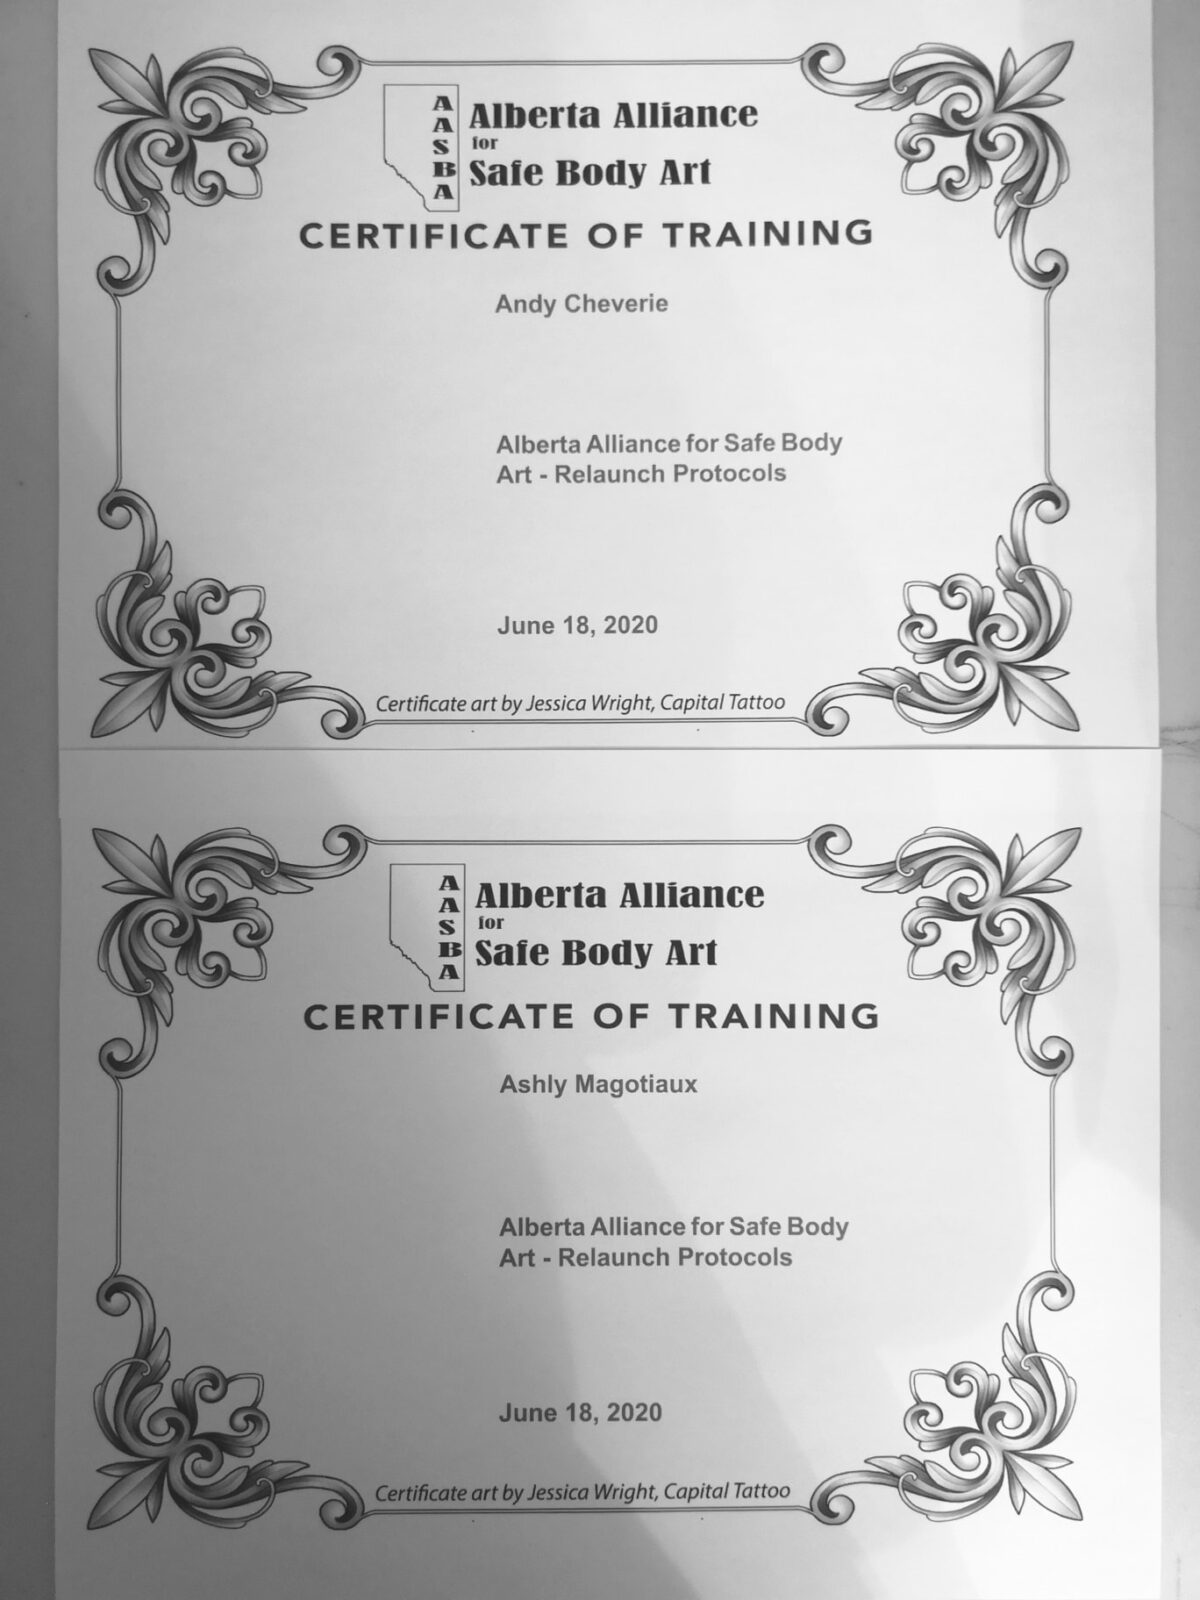 Alberta Alliance for Safe Body Art Certificate of training for both artists at Angry Monkey.